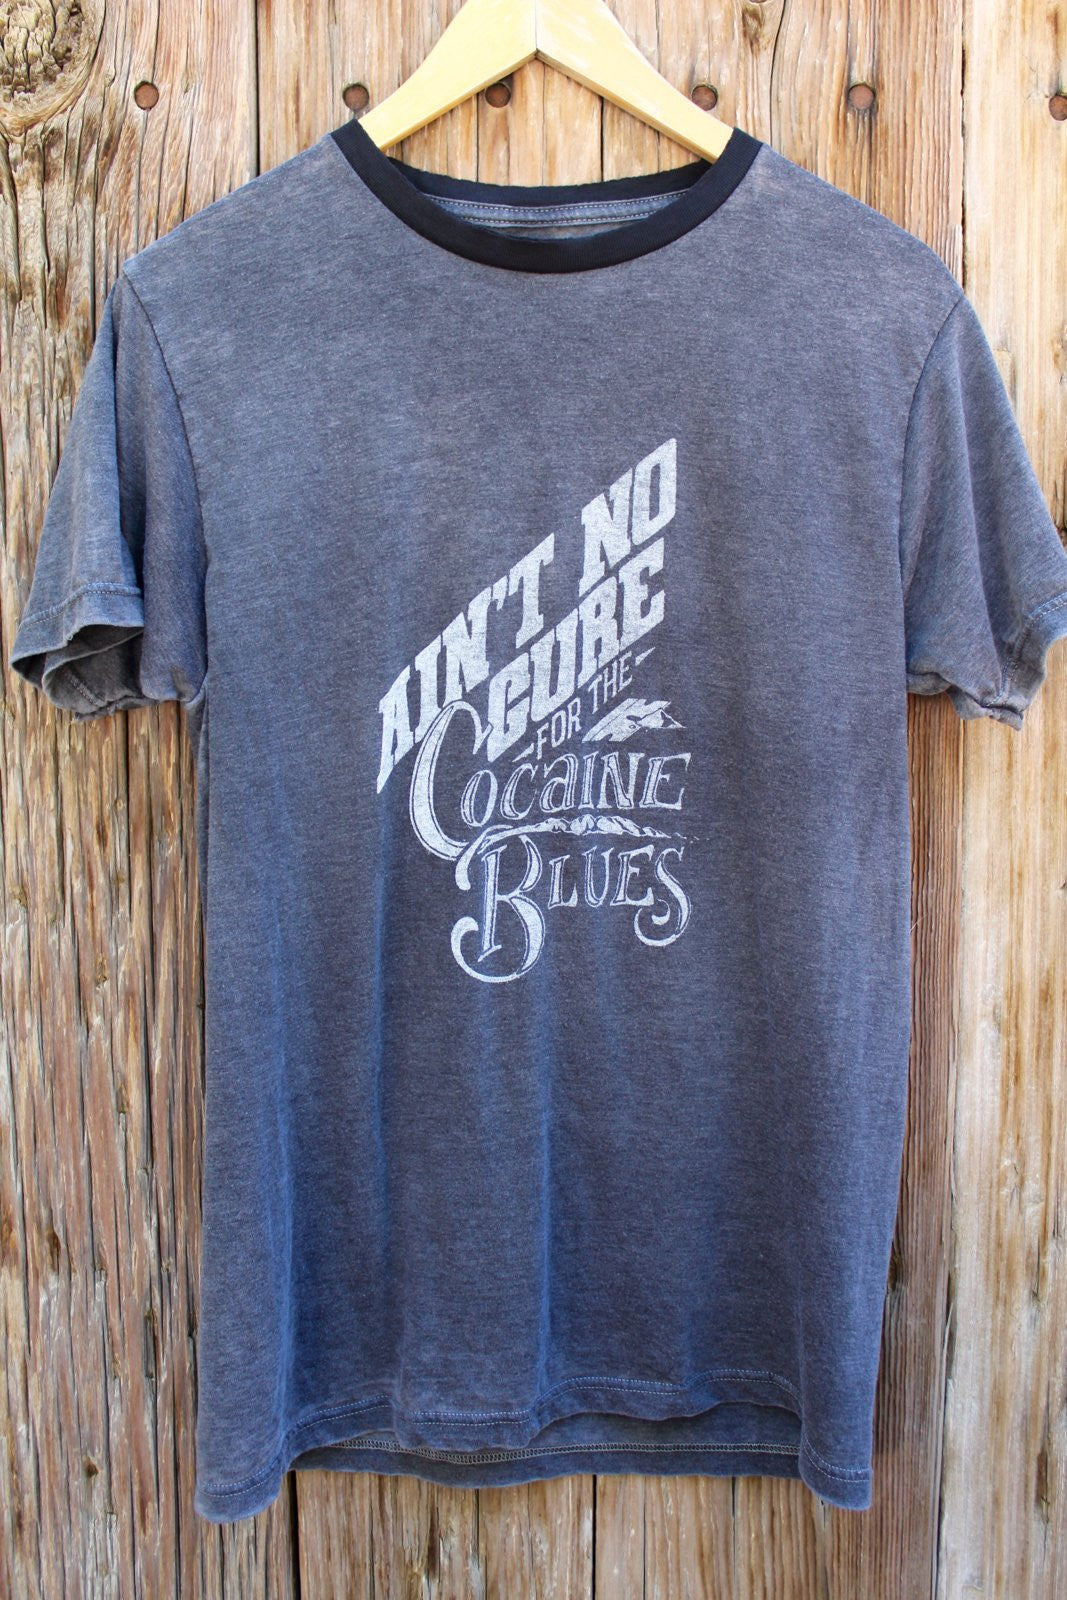 Ain't No Cure For The Cocaine Blues Tee- CLEARANCE!